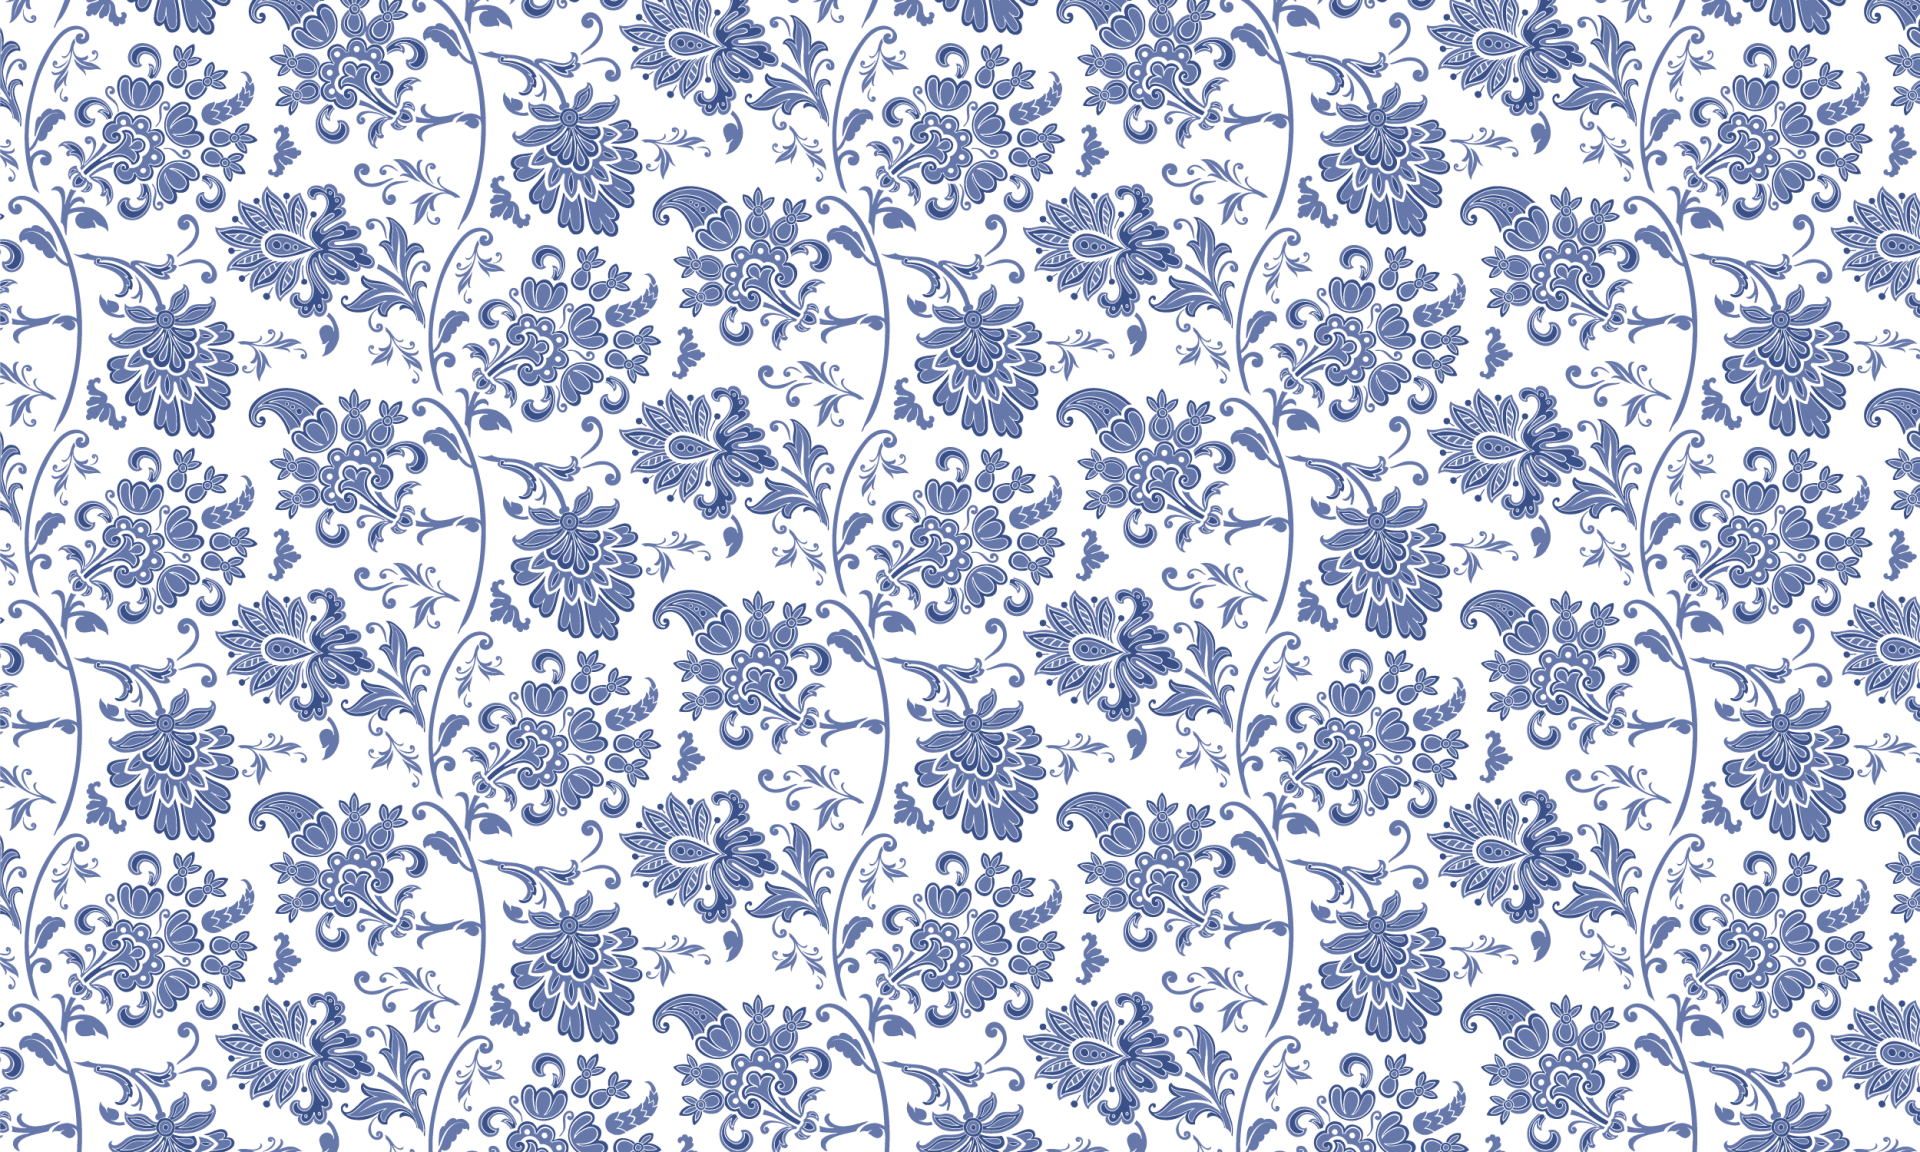 Silene, surface pattern design created by Pascûal